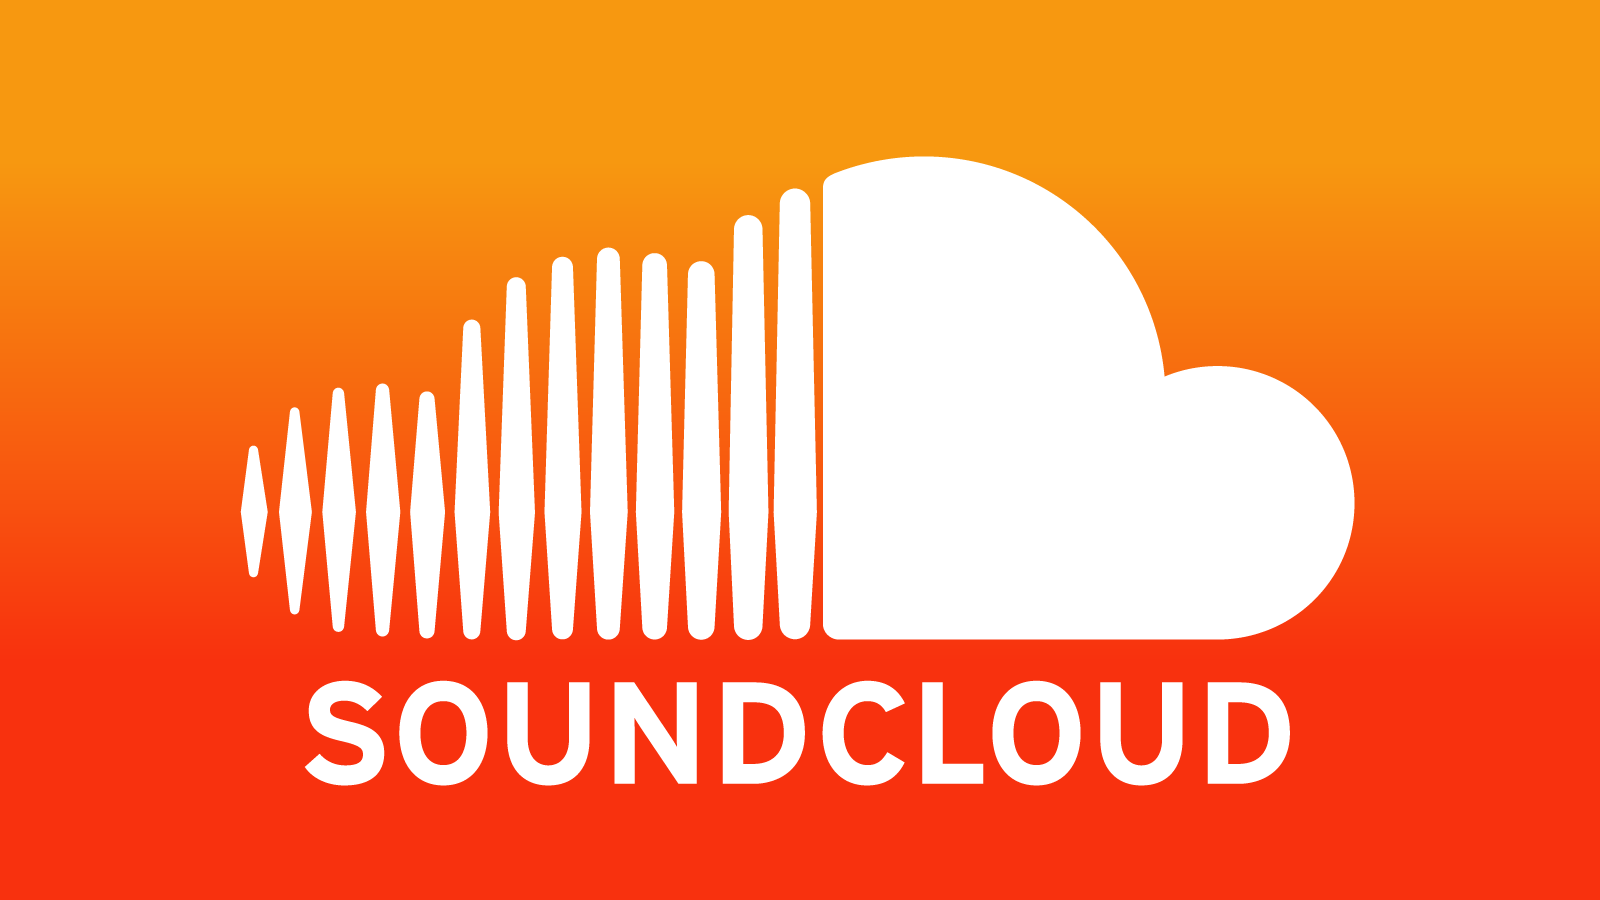 sound cloud image